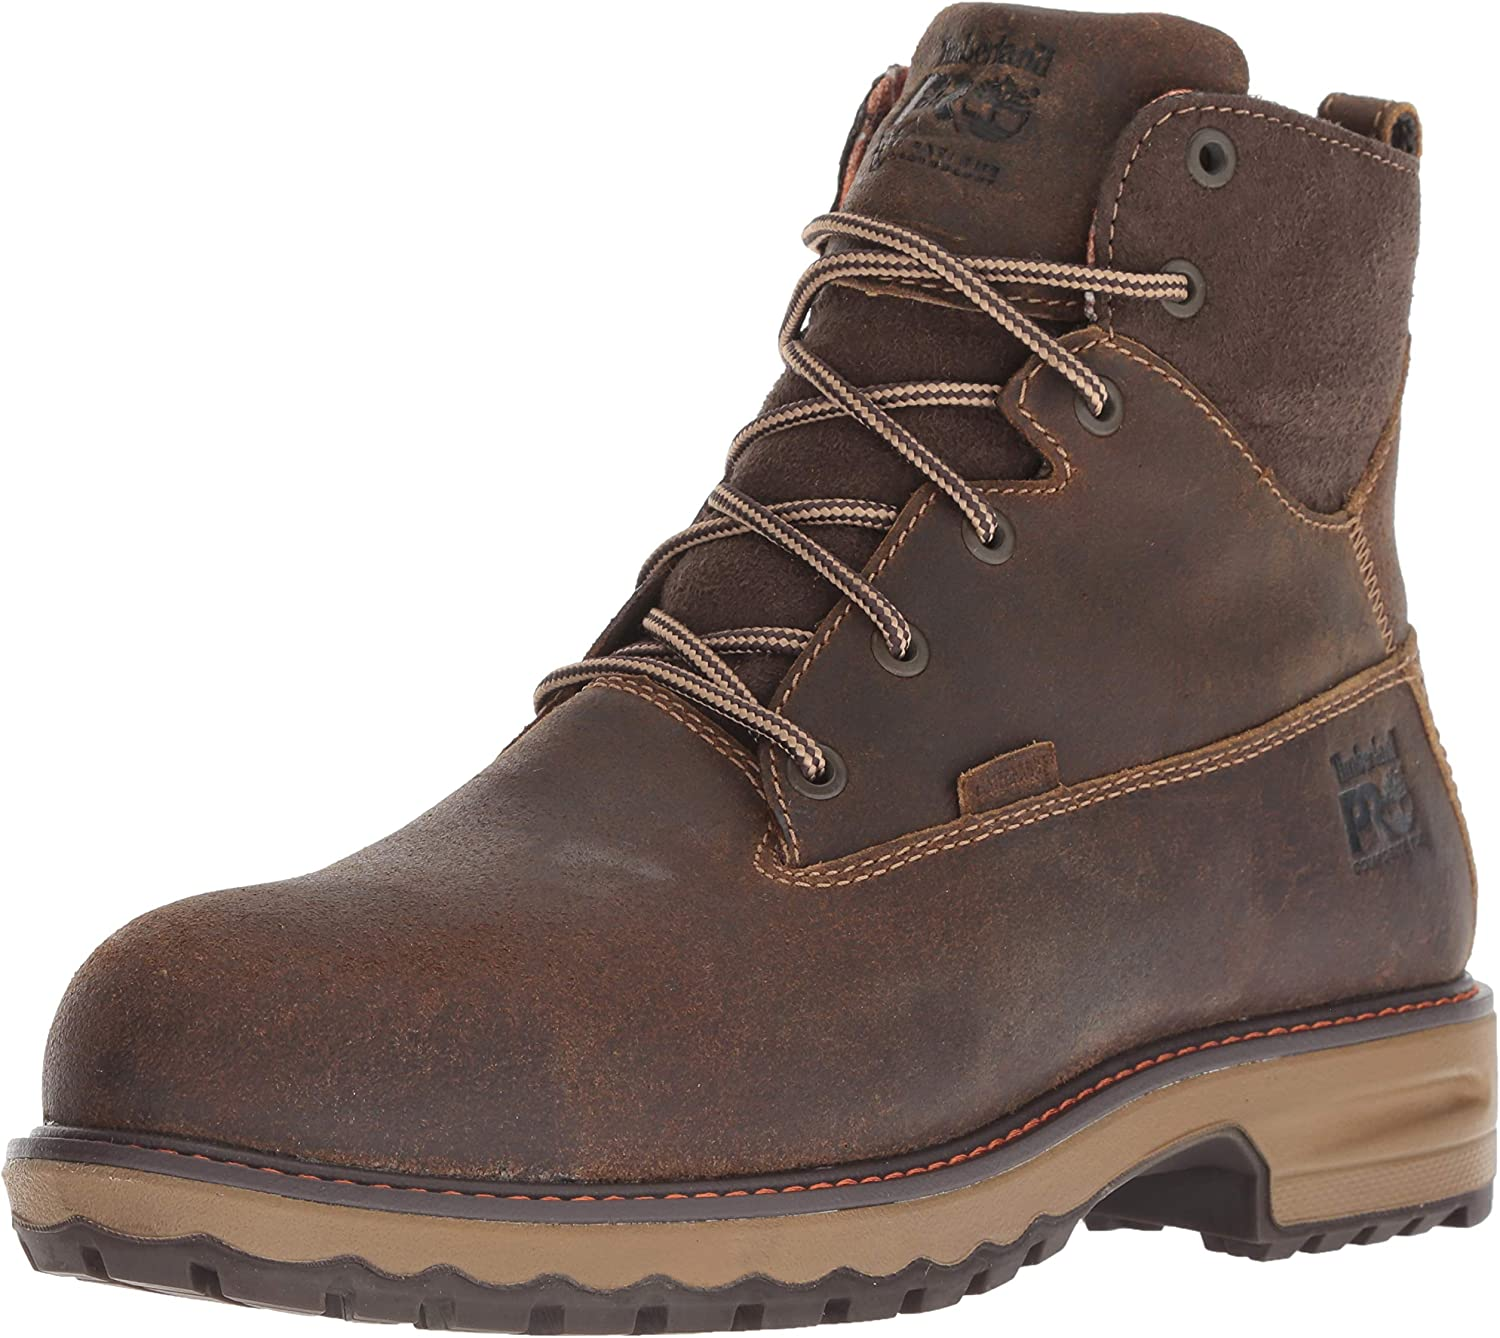 "Timberland PRO Women's Hightower 6"" Composite Toe Waterproof Insulated Industrial Boot"